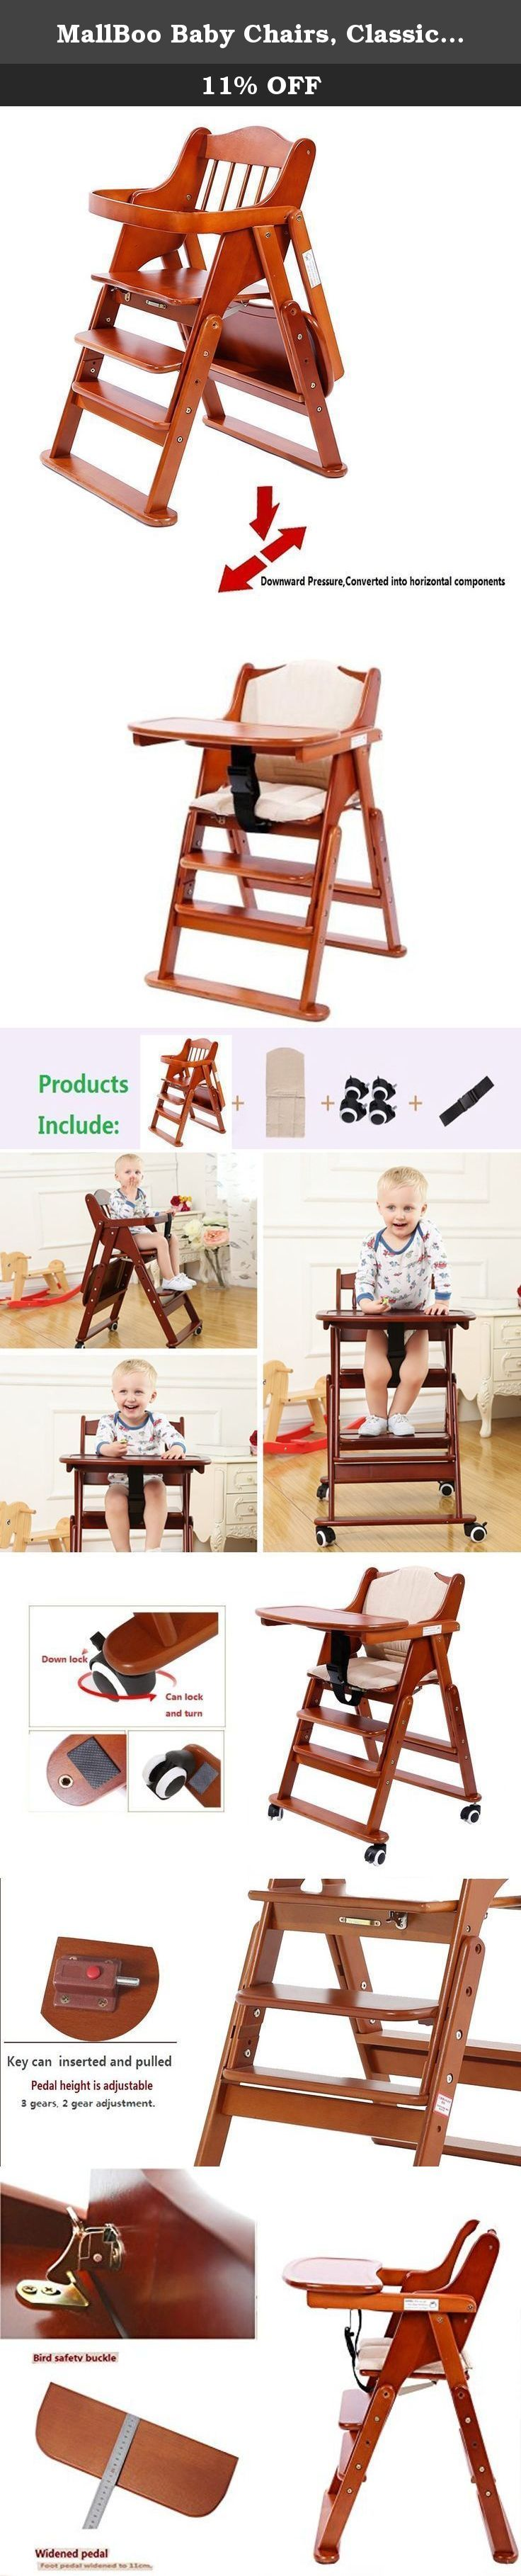 MallBoo Baby Chairs, Classic Comfort Muli-function Beech Wood Foldable High Chair with Tray , Cushion and Universal Wheels (Light Coffee). Product Manufacture and brand:MallBoo Product Name: MallBoo Multi-function Beech Wood Foldable Highchair Product Material: Carefully selection of imported German beech, is a good choice for the production of children's chairs. The scope of products: The product is suitable for living room,indoors, outdoors, and a series of places. About product: The...